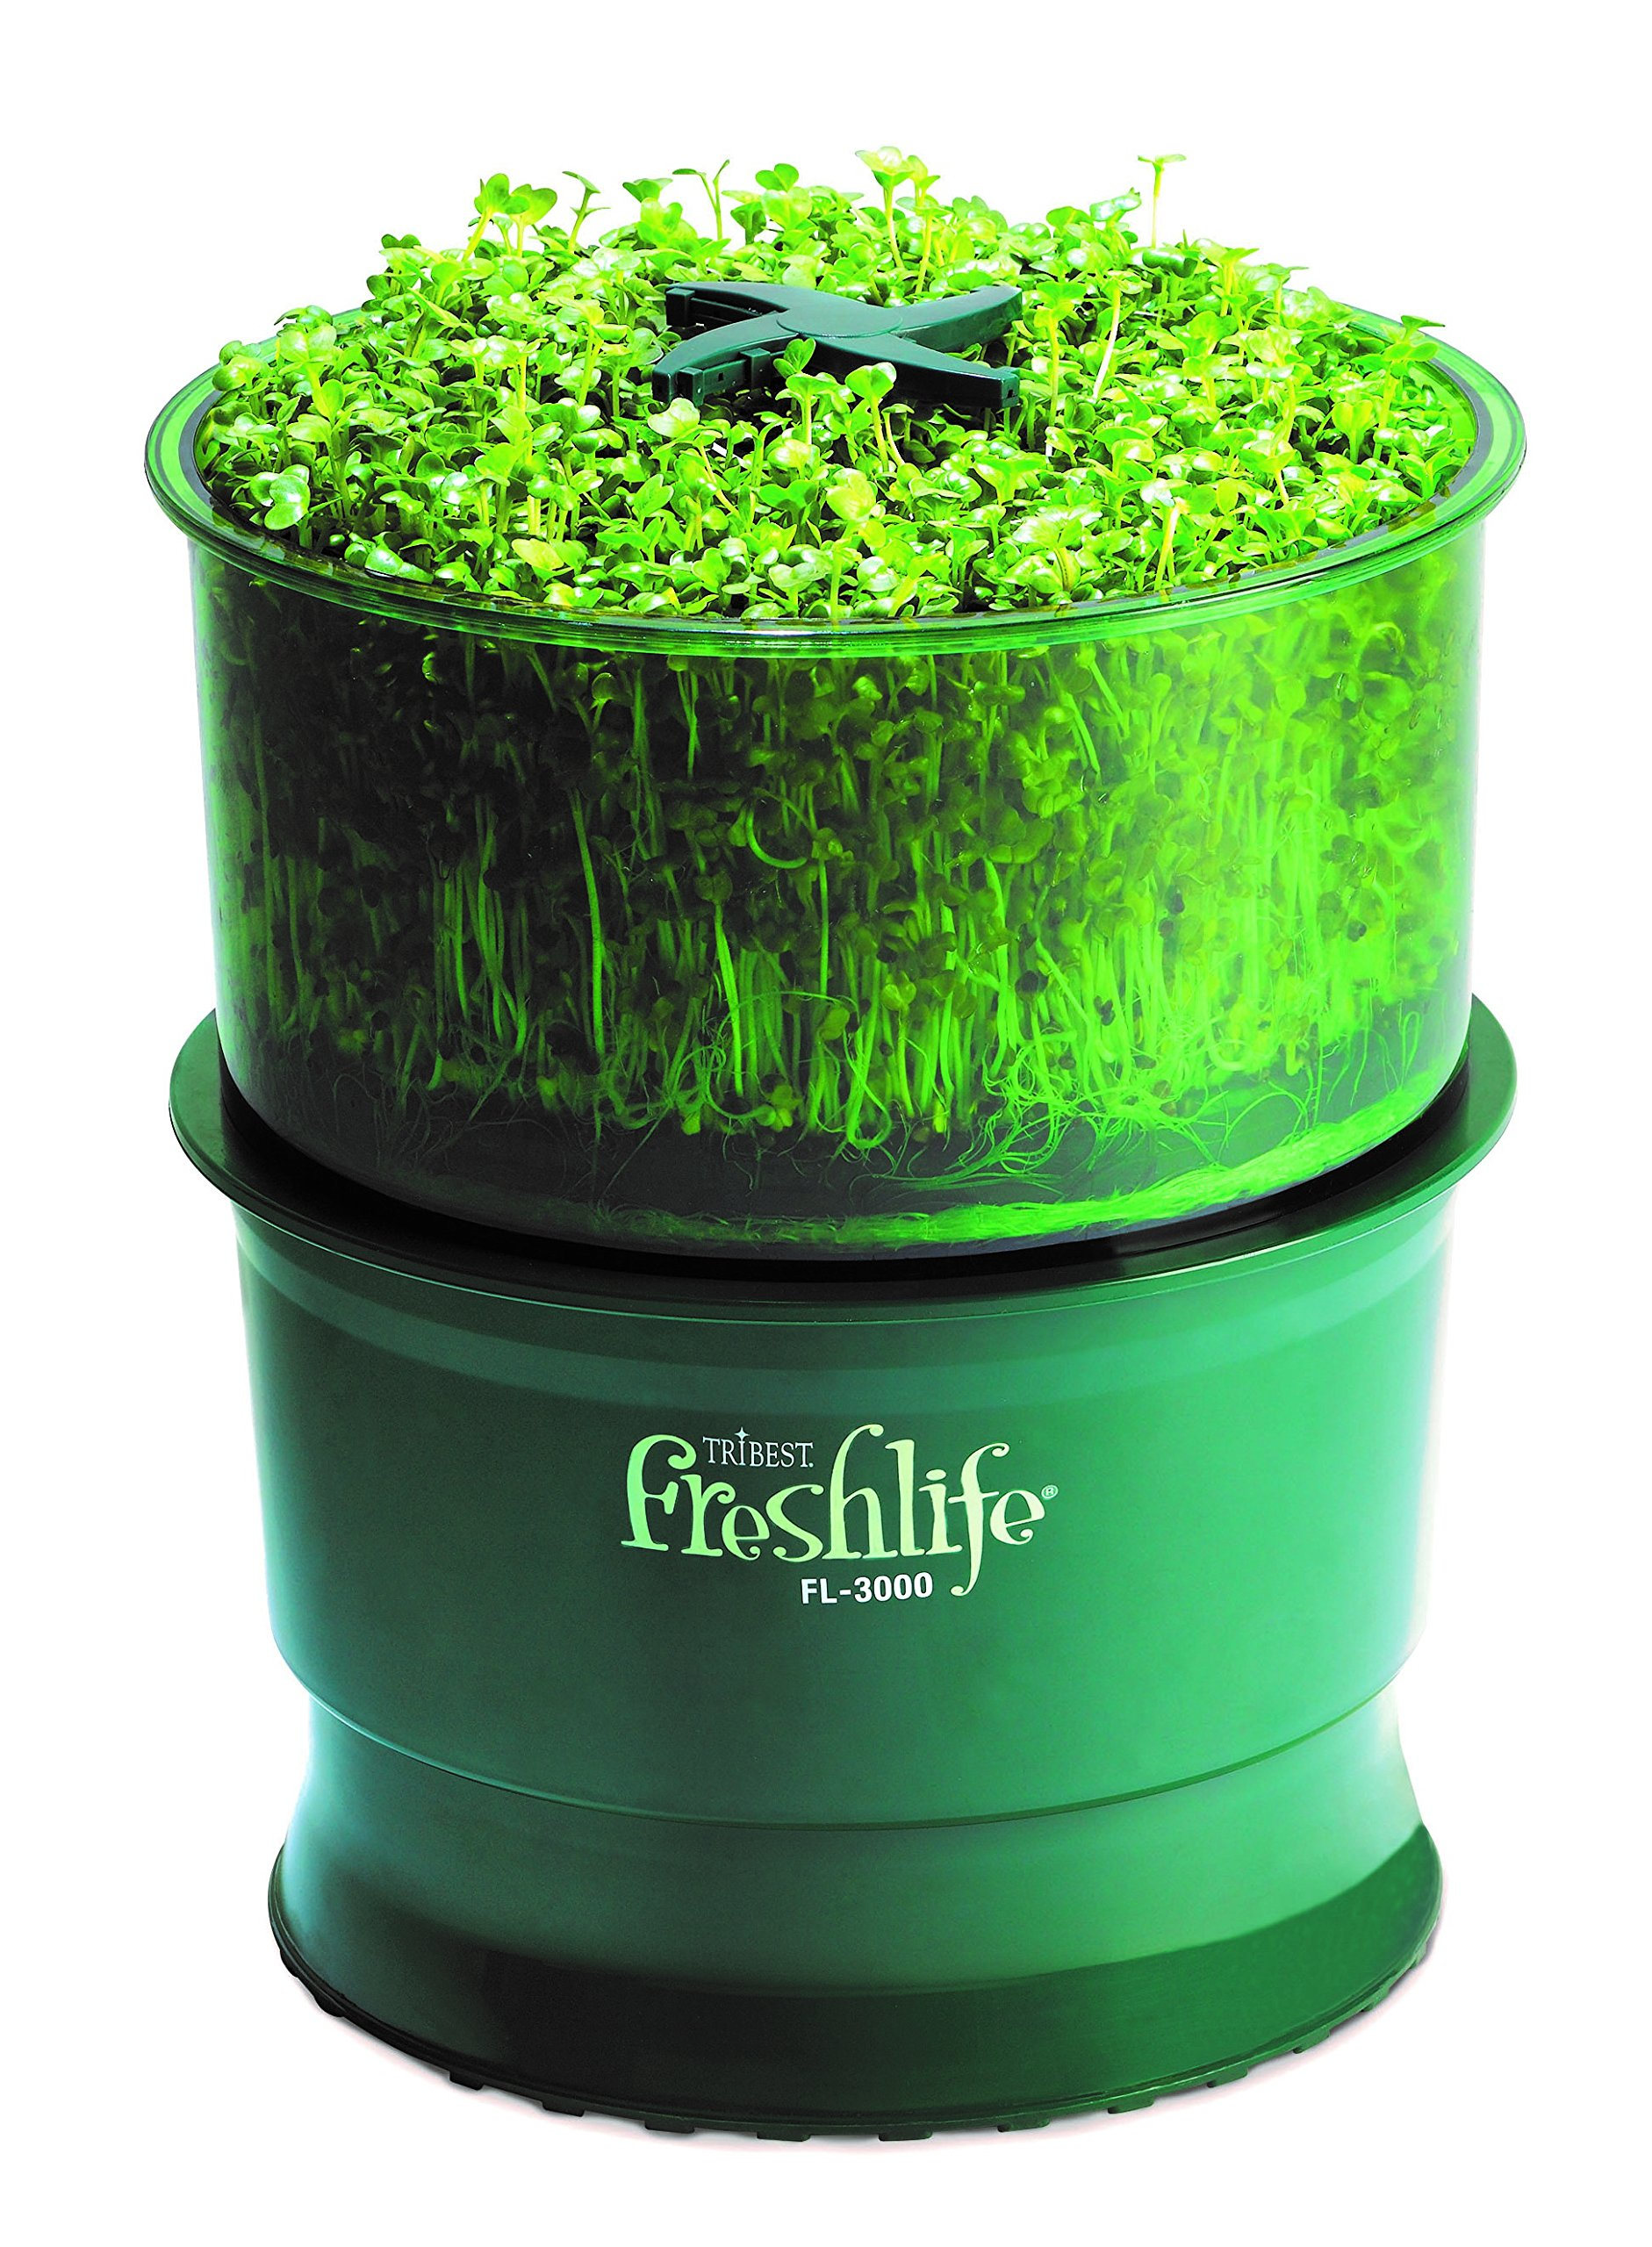 Tribest FL-3000 Freshlife 3000  Automatic Sprouter, Green by Tribest